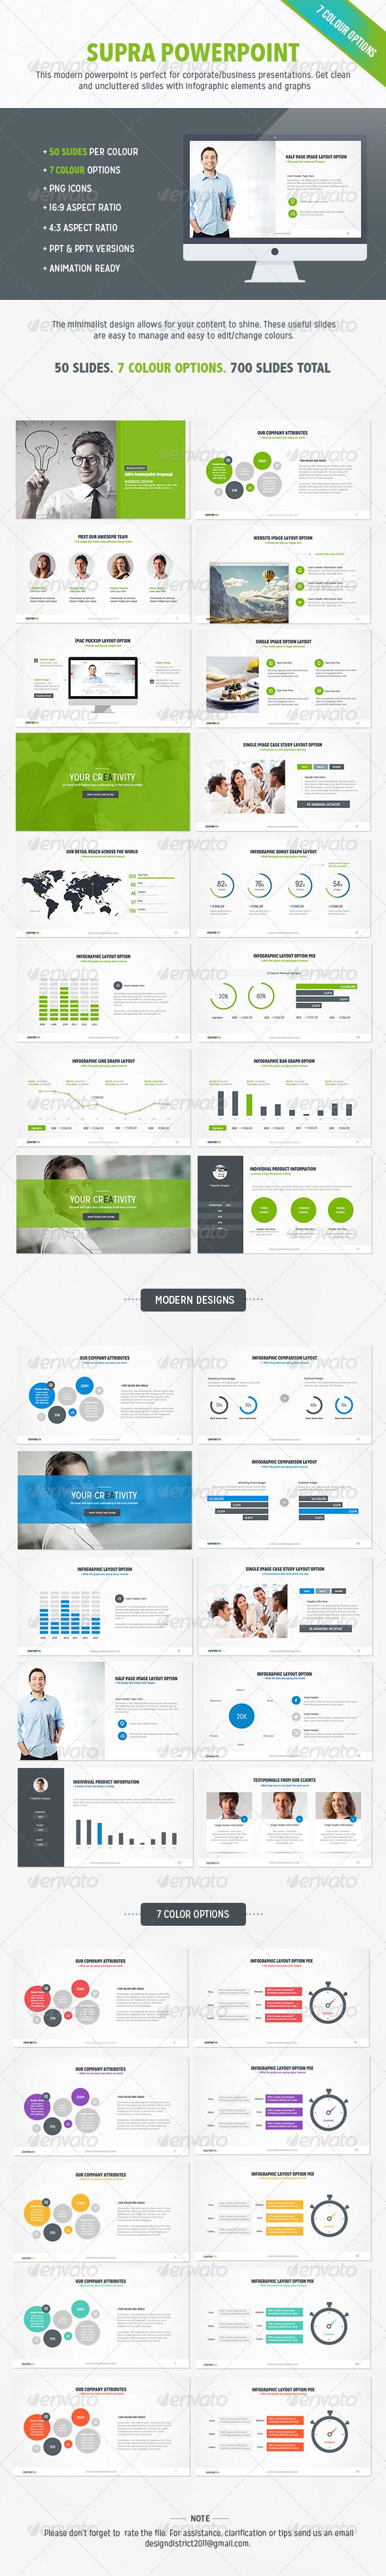 20 best ppt images on pinterest ppt design ppt template and supra powerpoint presentation toneelgroepblik Images